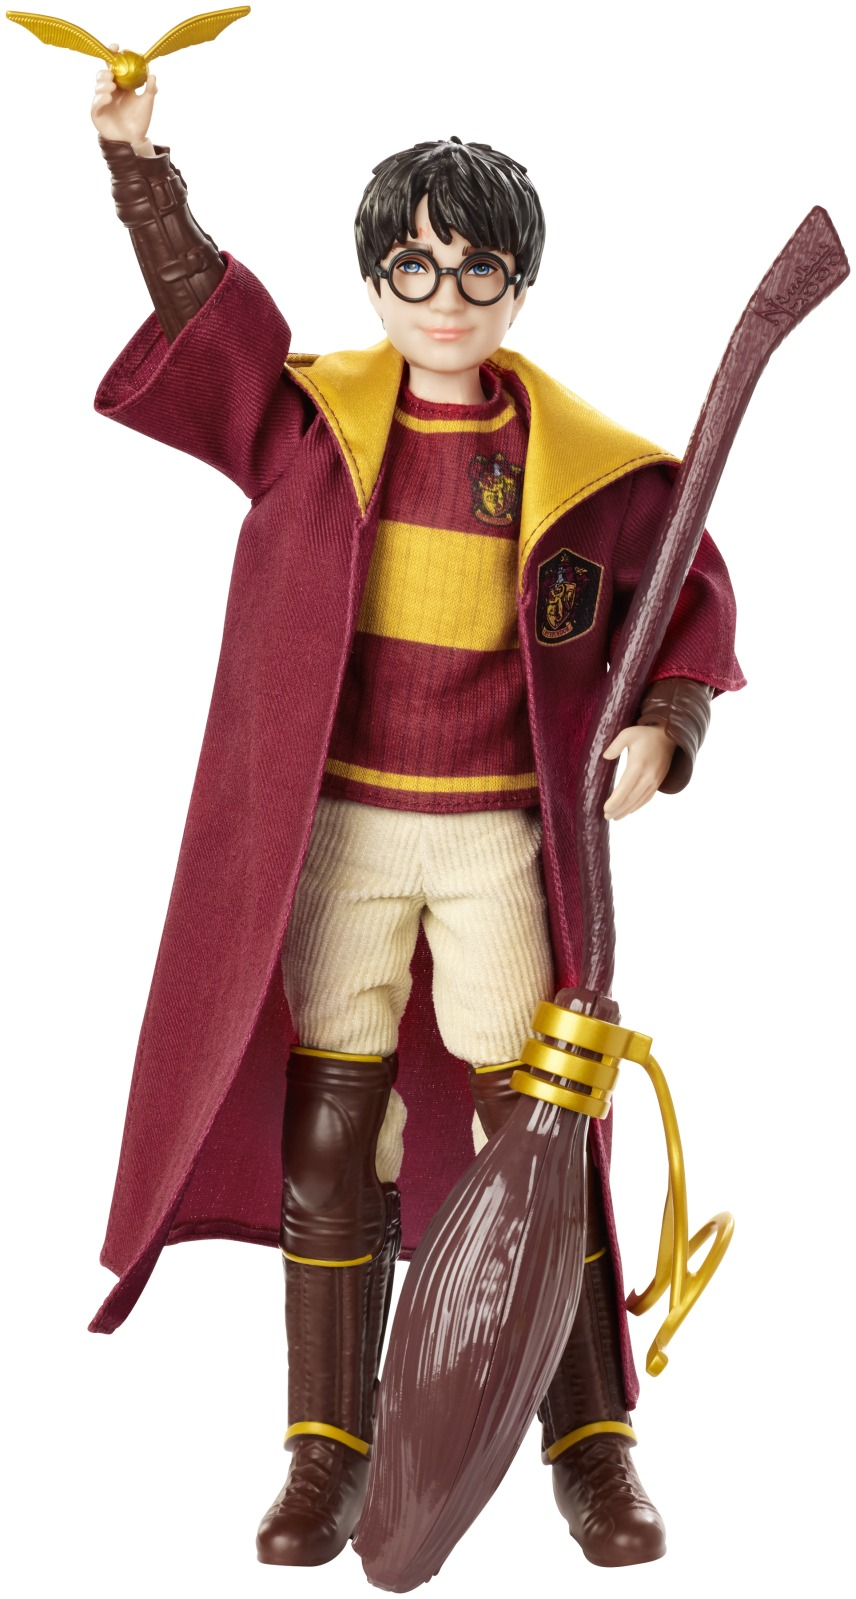 Harry Potter Quidditch Harry Potter Doll with Nimbus 2000 Broomstick by Mattel